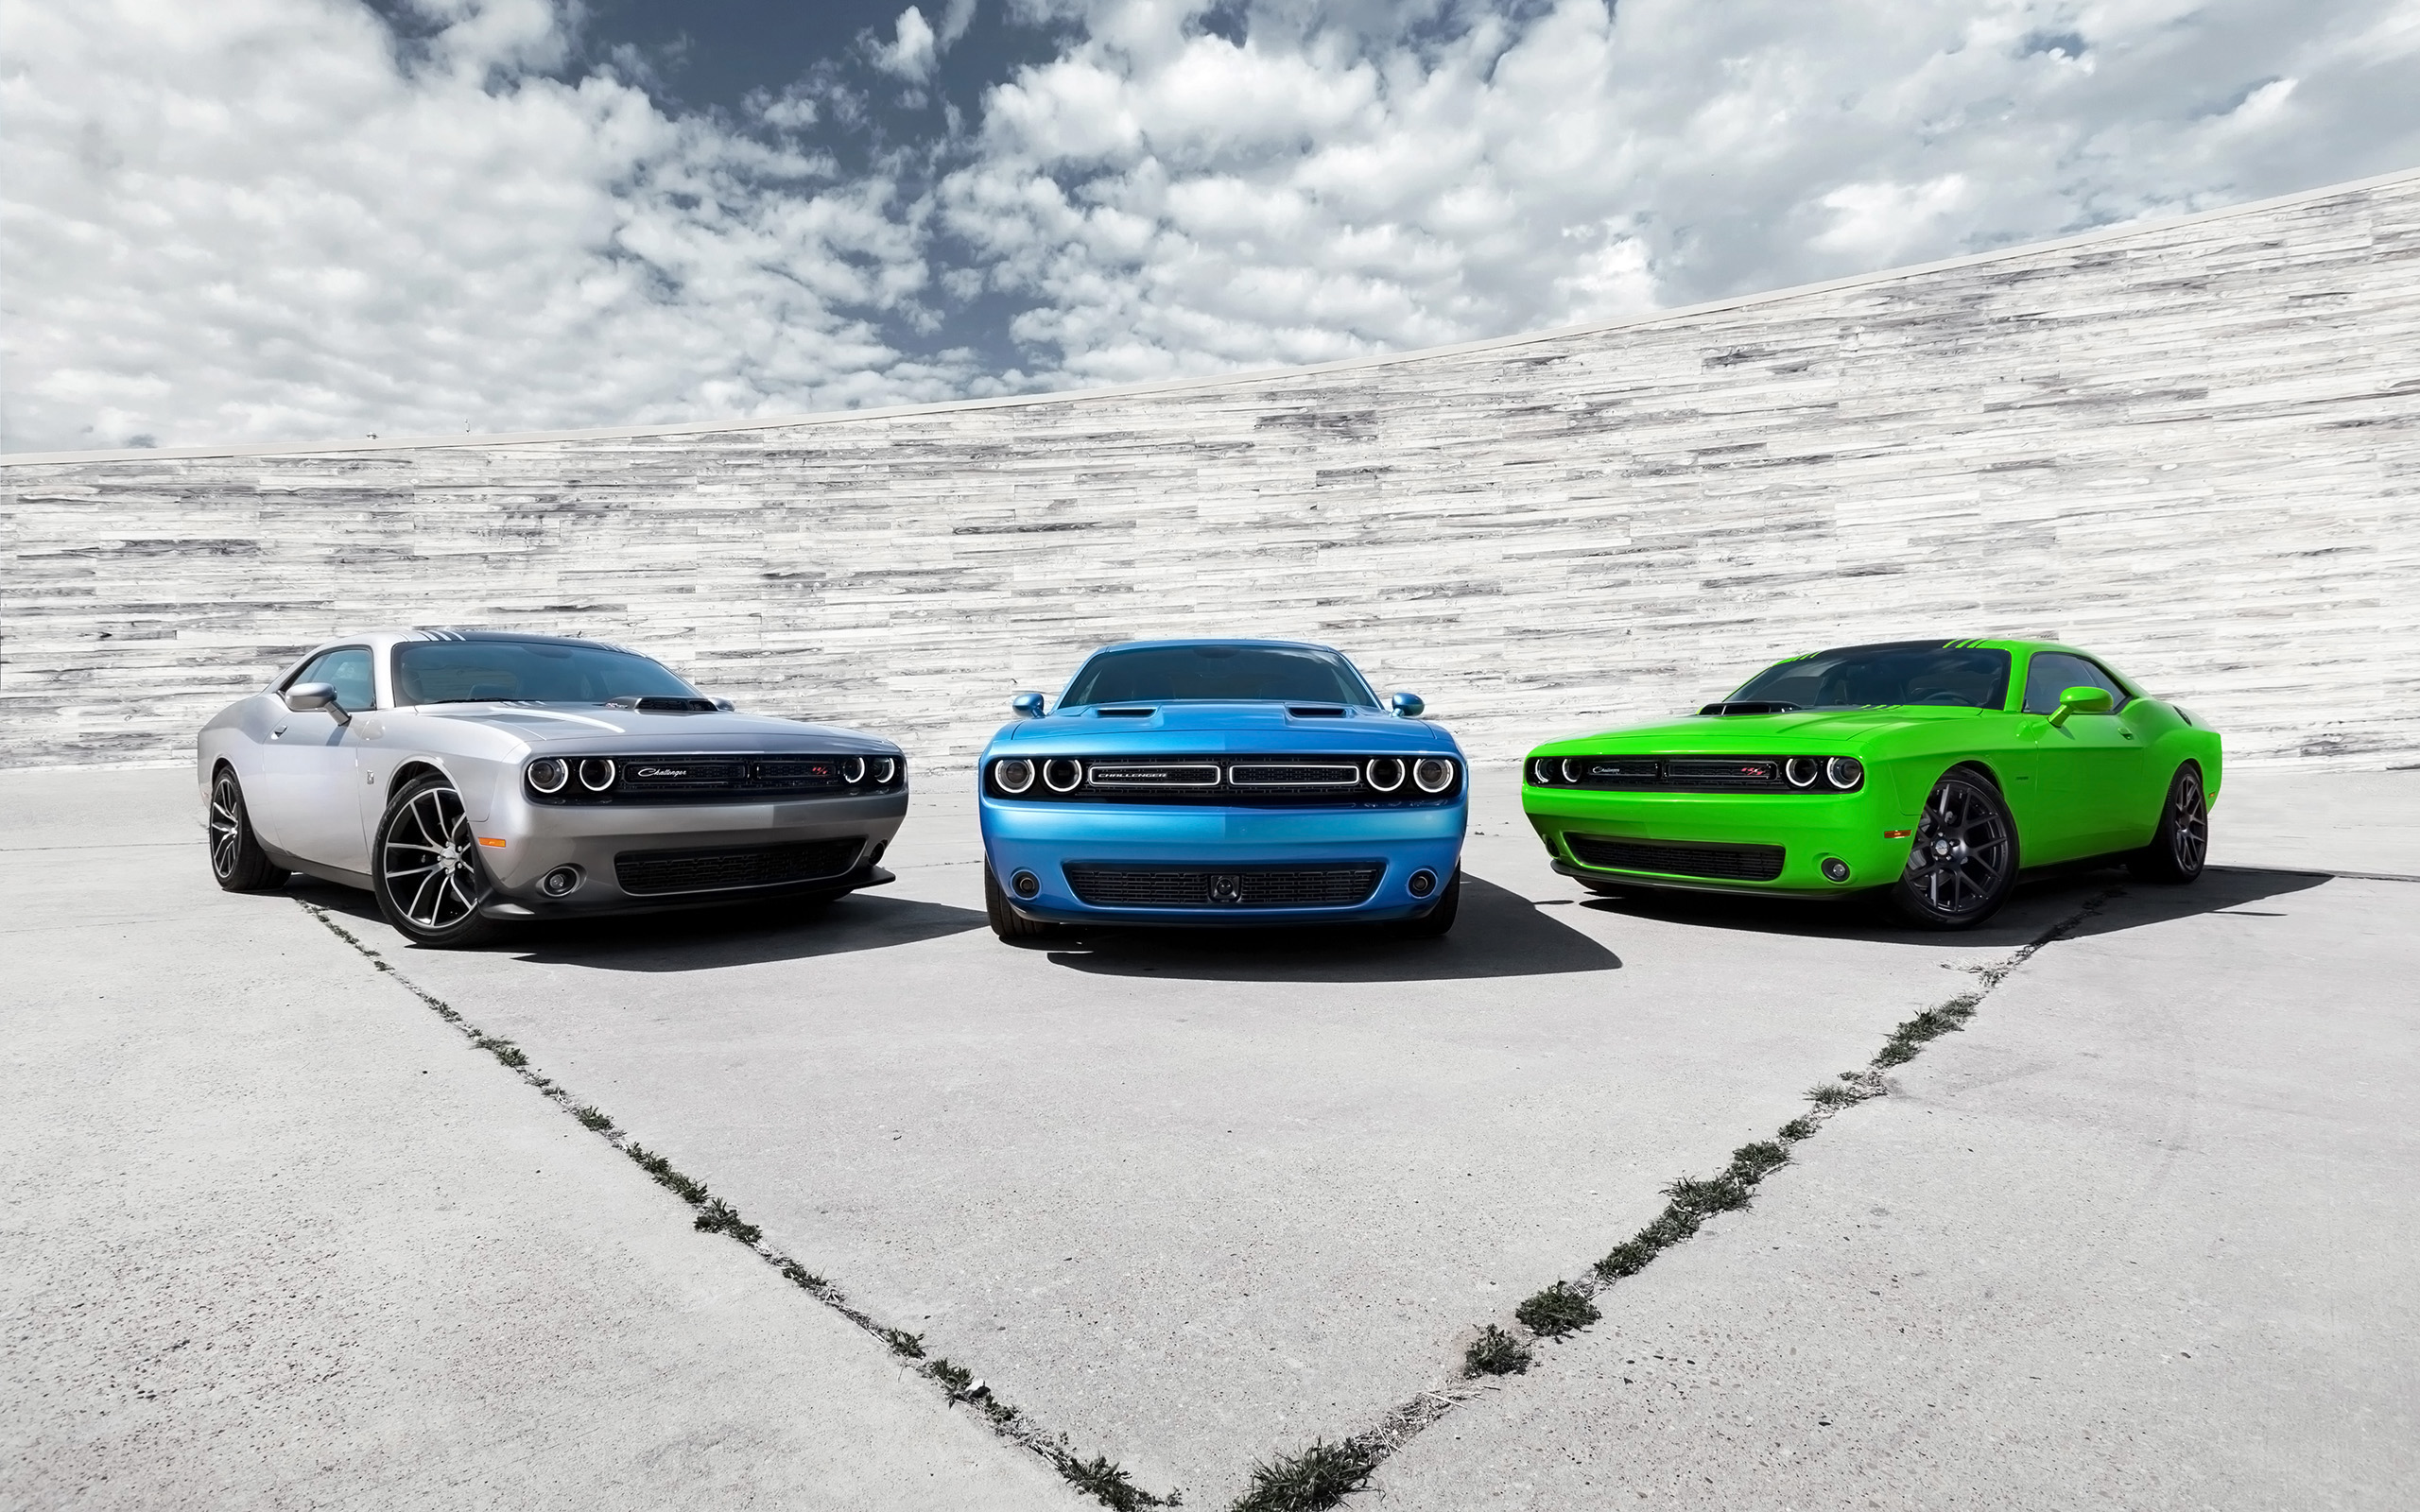 Challenger Hd Wallpaper Daily Wallpaper Dodge Challenger Trio I Like To Waste My Time